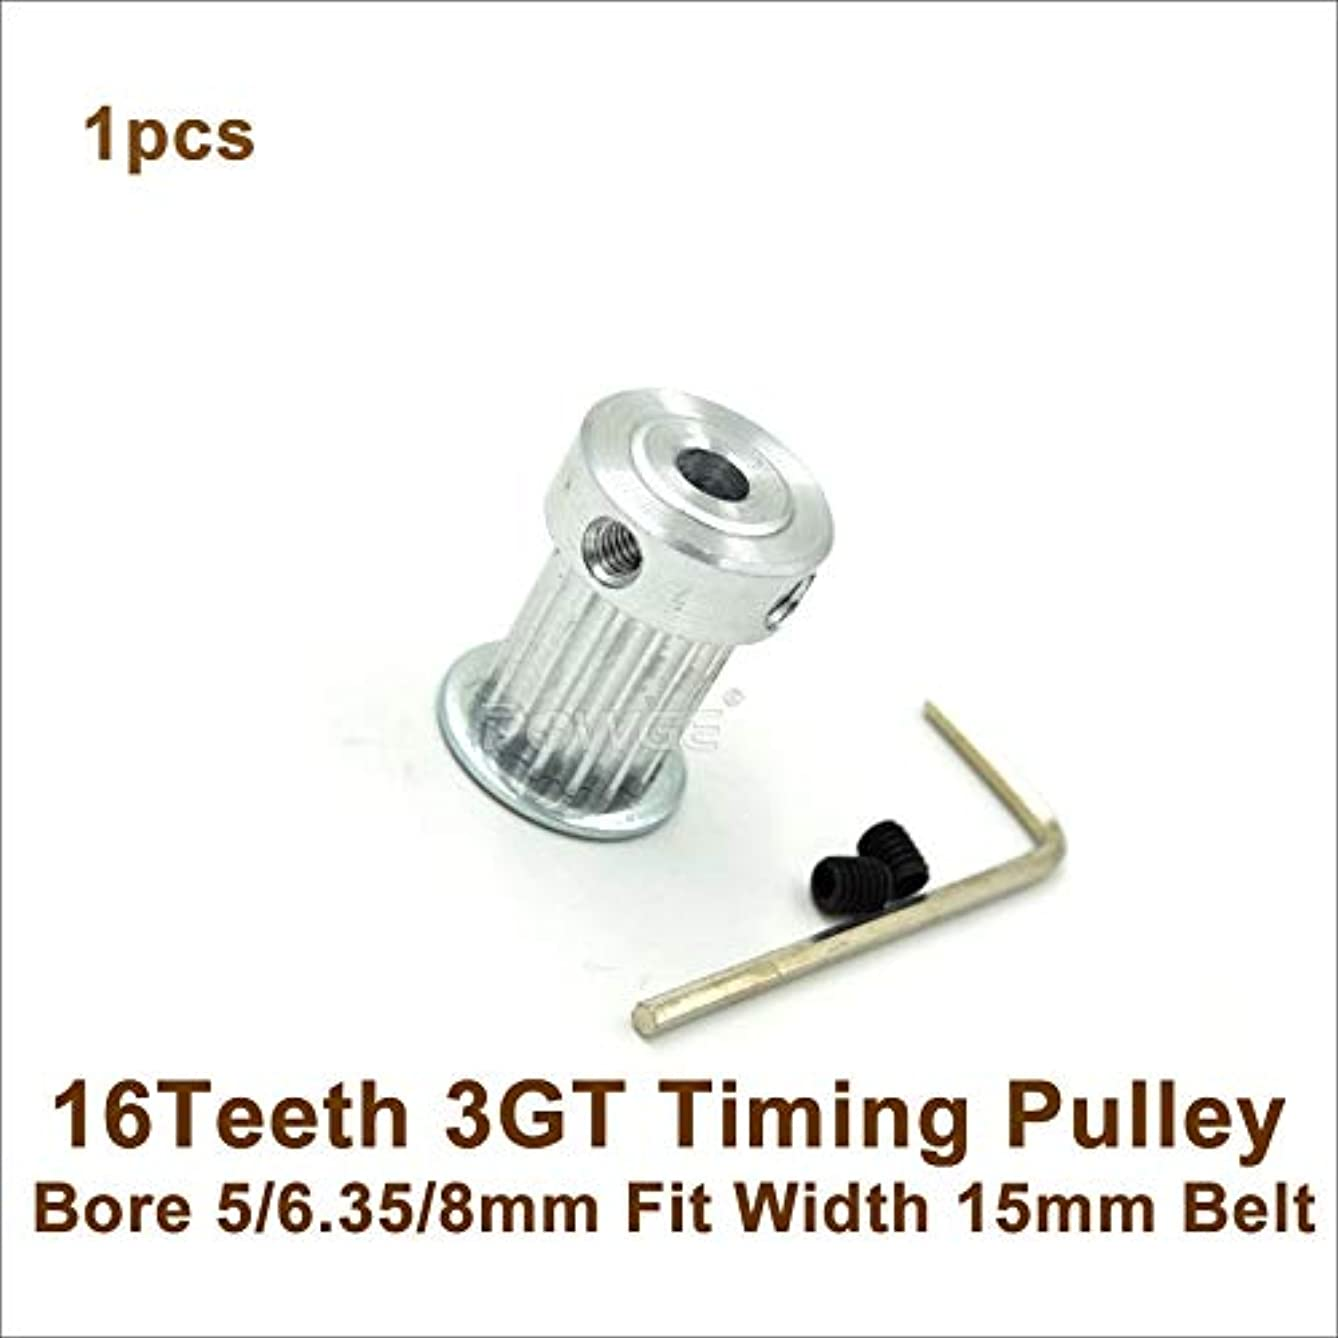 Ochoos 16 Teeth 3GT Timing Belt Pulley Bore 5/6.35/8mm Fit W=15mm GT3 Timing Belt 16T 16Teeth GT3 Timing Pulley 3D Printer Parts - (Bore Diameter: 8mm)